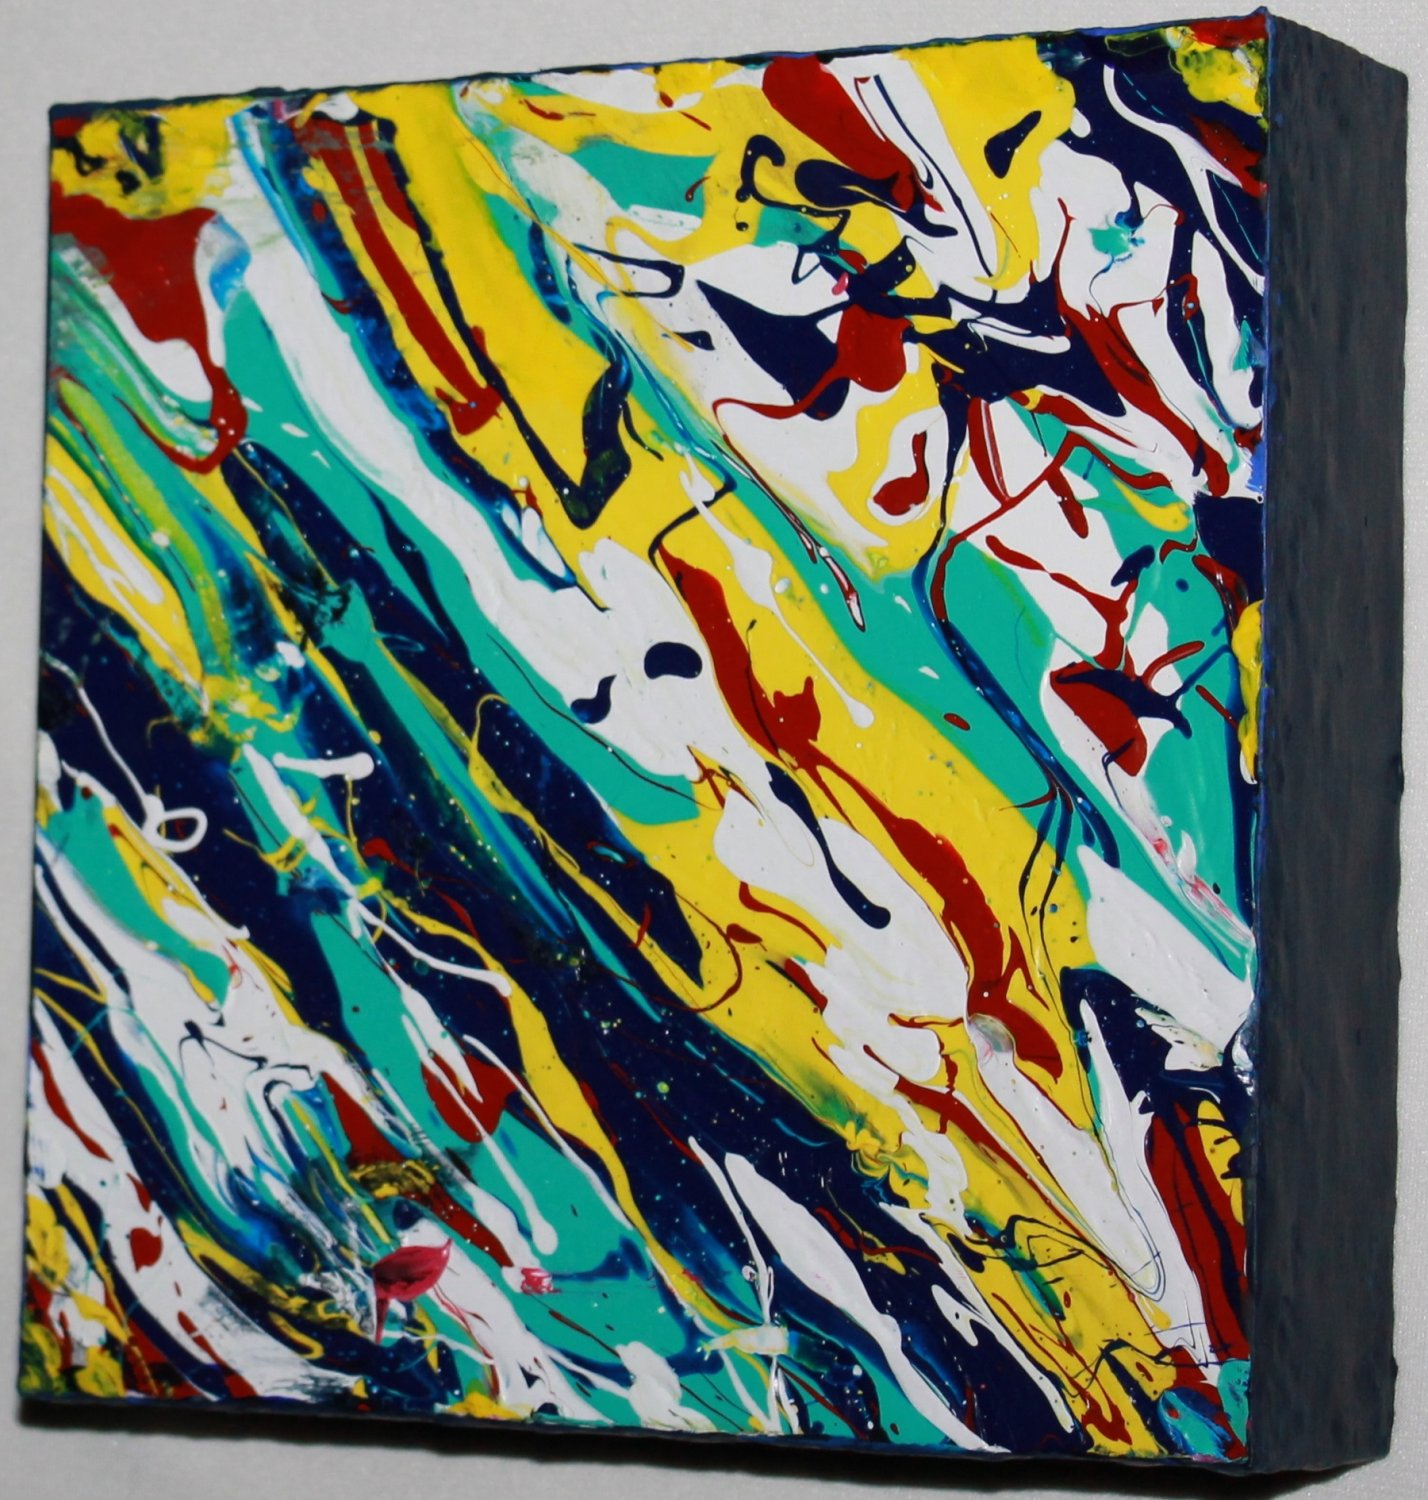 Home Decor Art - abstract marbled painting  - teal dark blue yellow red blue white